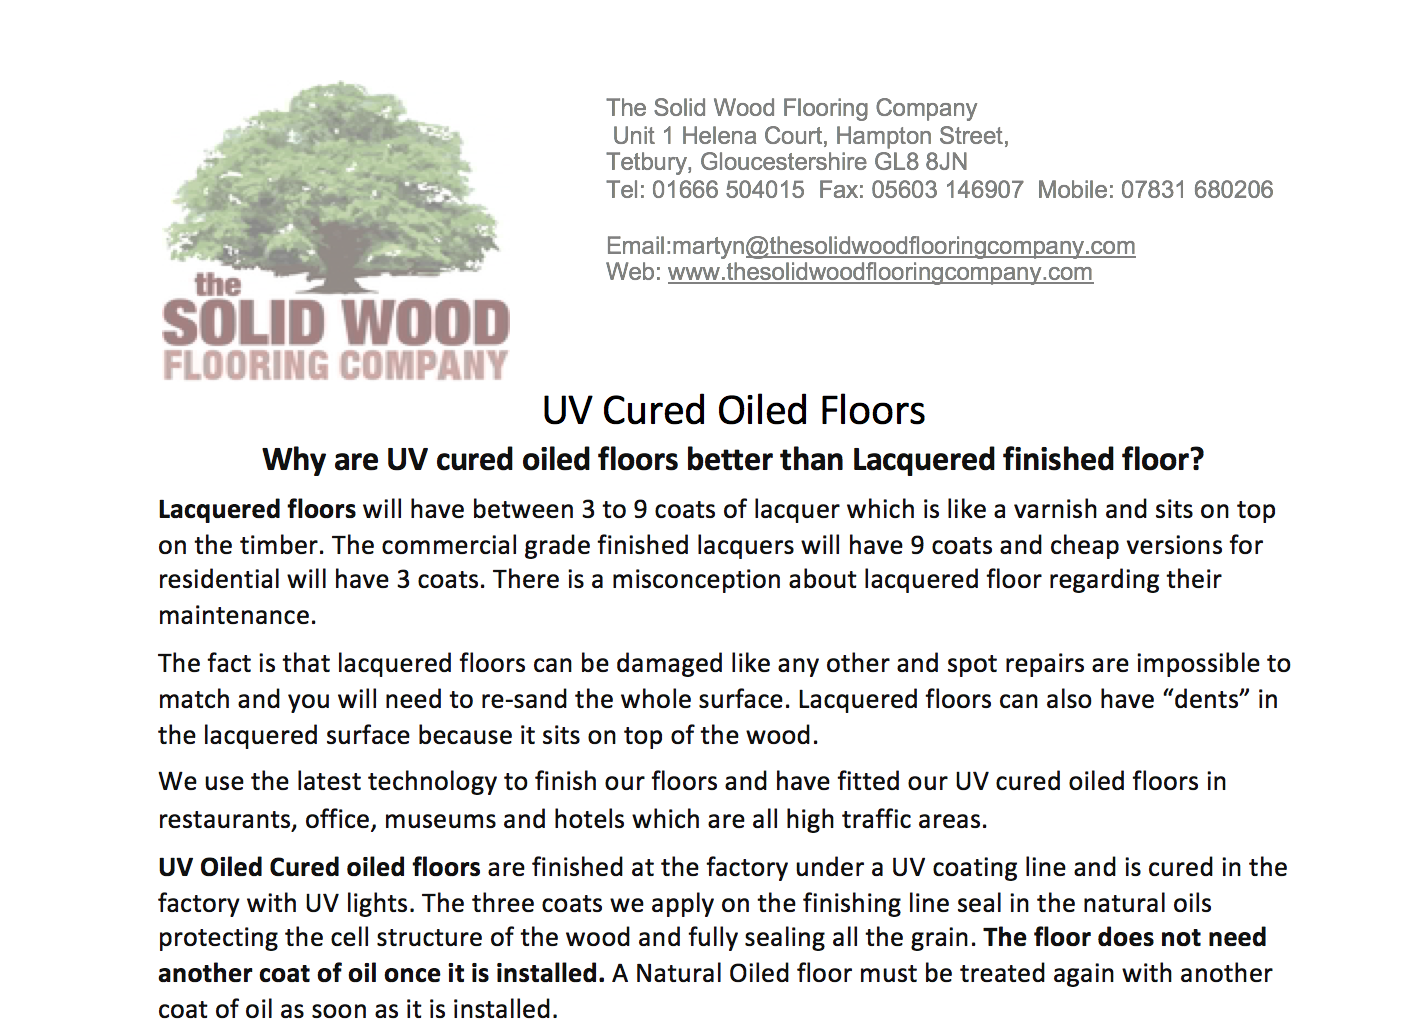 Why are UV cured oiled floors better than Lacquered finished floor?